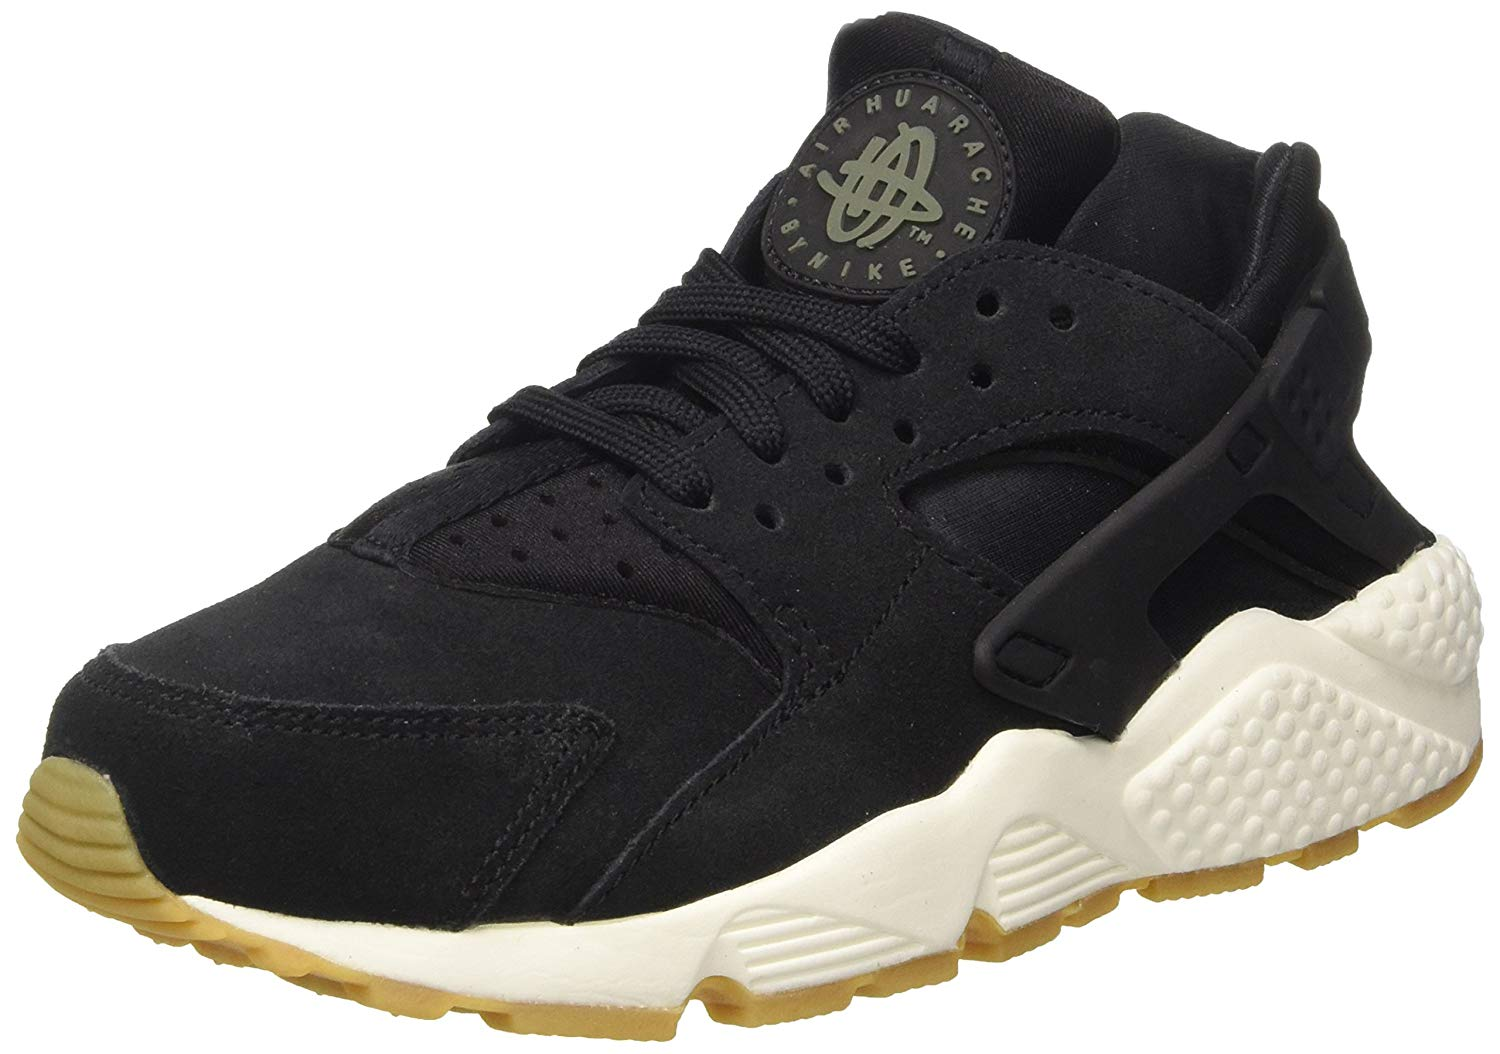 279cc28cf8f6 Details about Nike Women s Air Huarache Run SD Black White AA0524-001